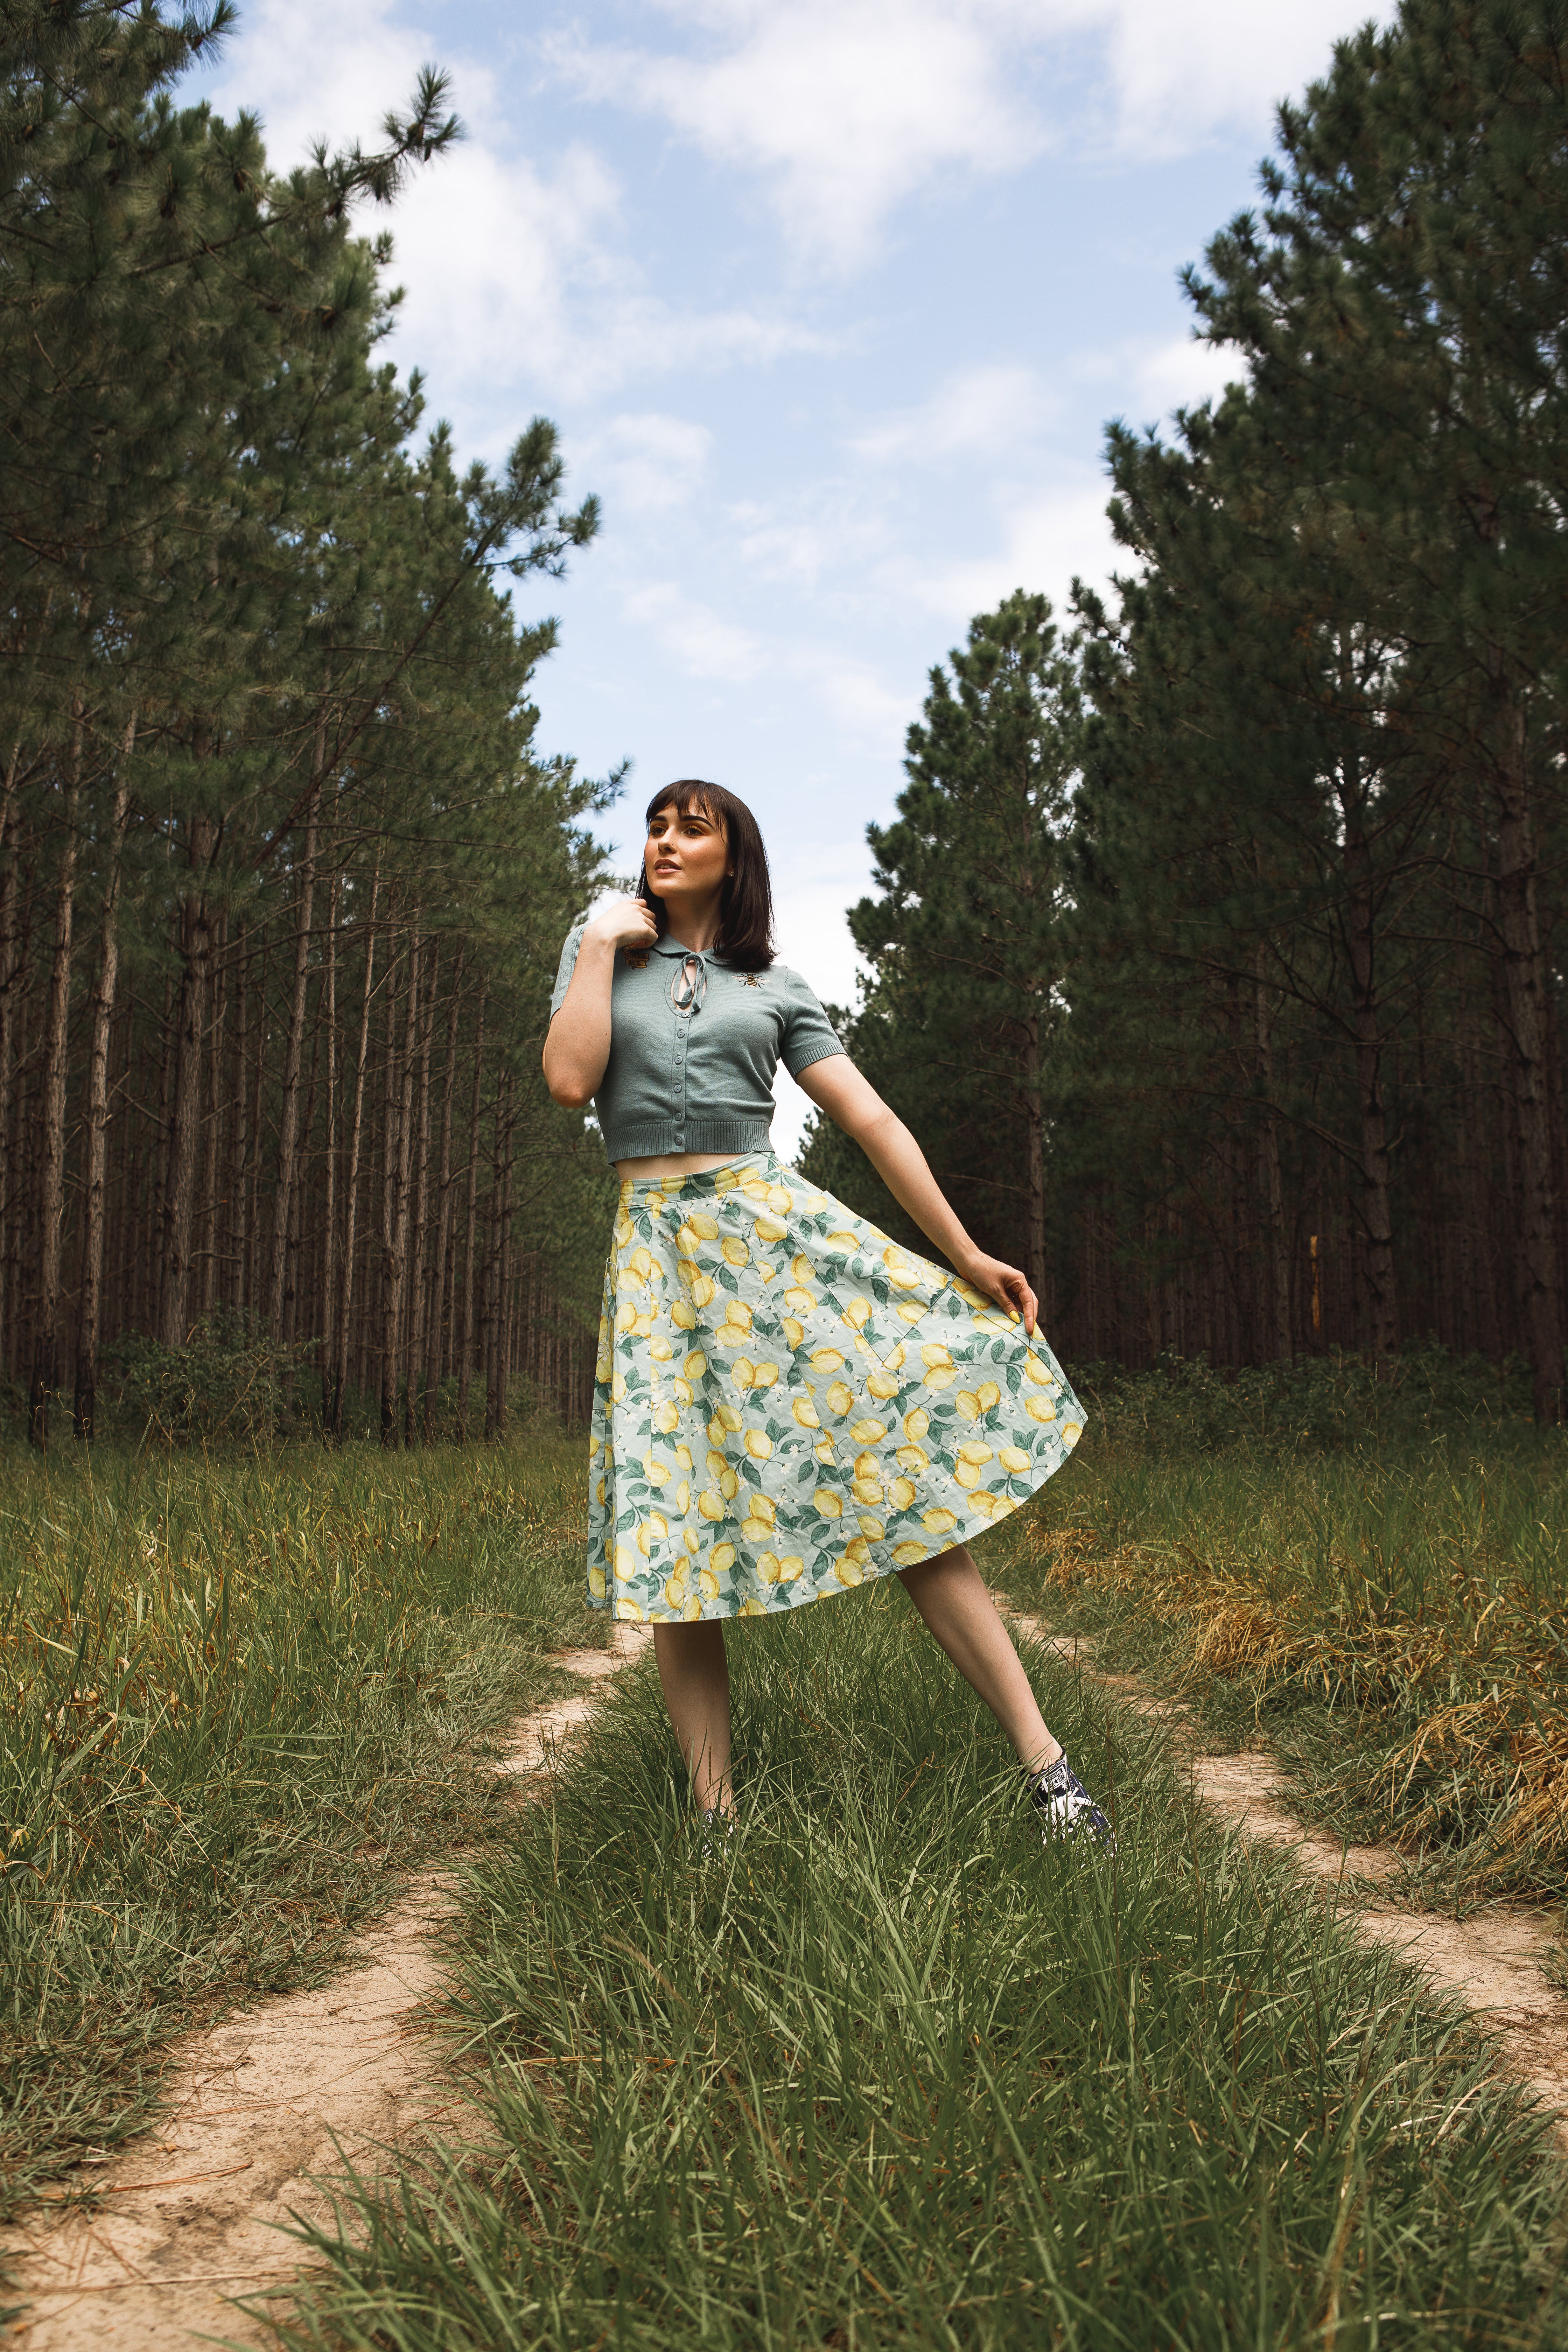 Woman Wearing Floral Skirt Standing On Grass Road